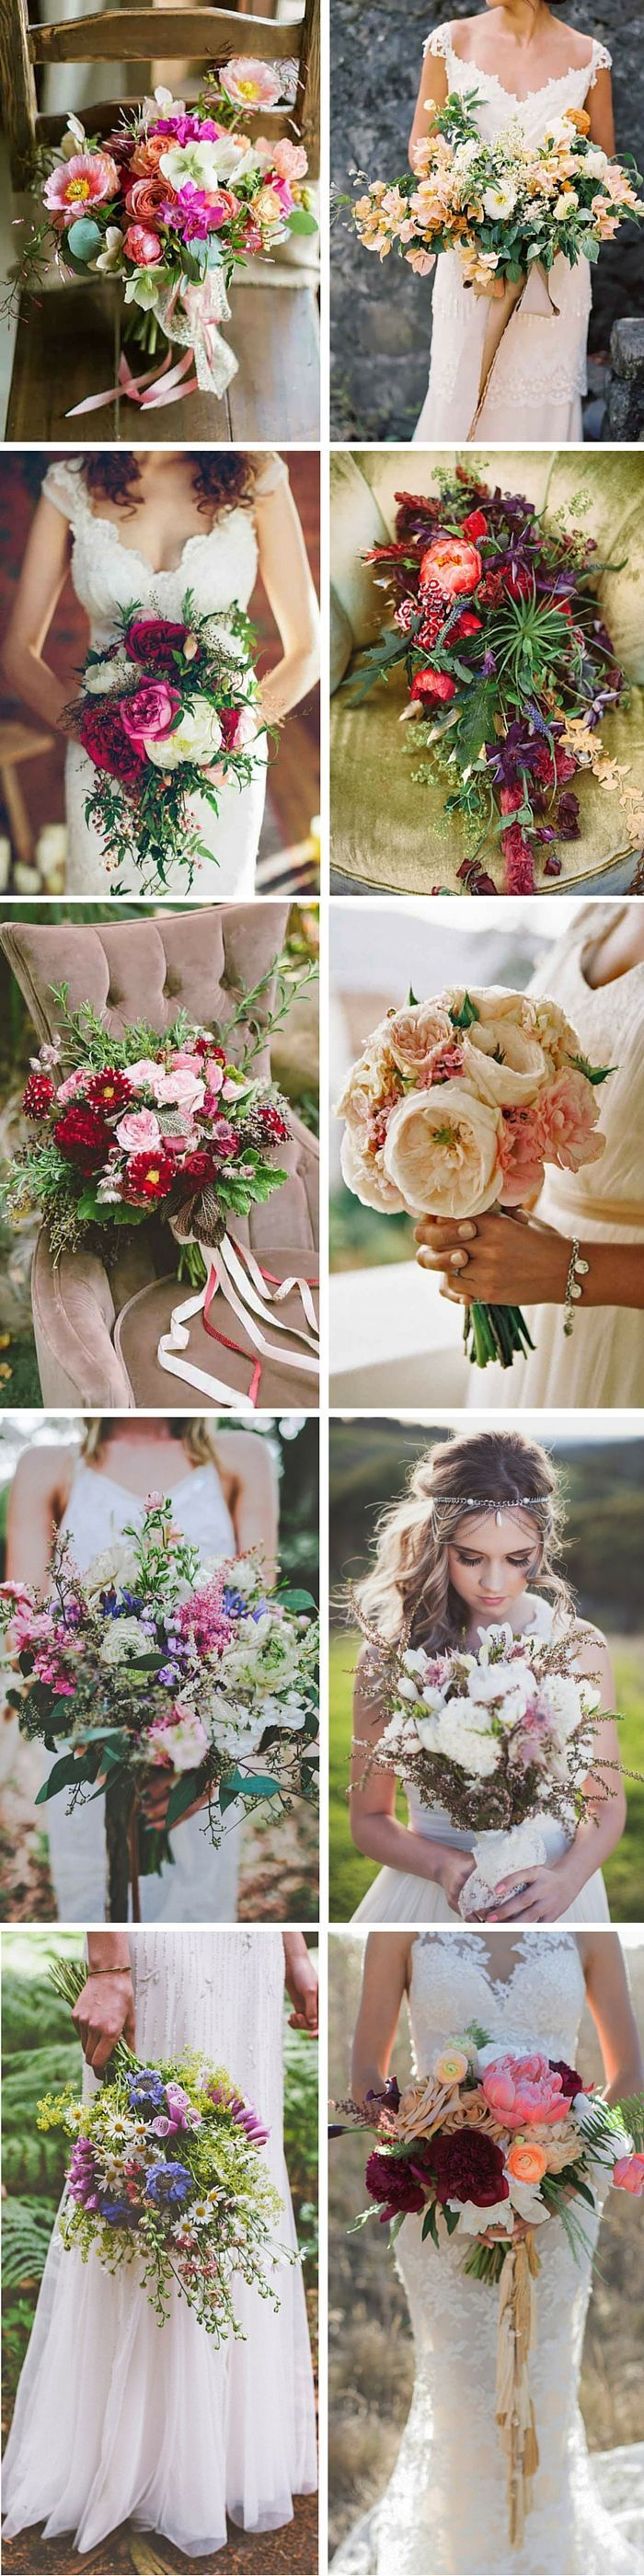 18 Bohemian Wedding Bouquets That Are Totally Chic ❤ Bohemian chic wedding bouquets are full of whimsical details, wild flowers and feathers. See more: http://www.weddingforward.com/bohemian-wedding-bouquets/ #weddings #bouquets                                                                                                                                                      More